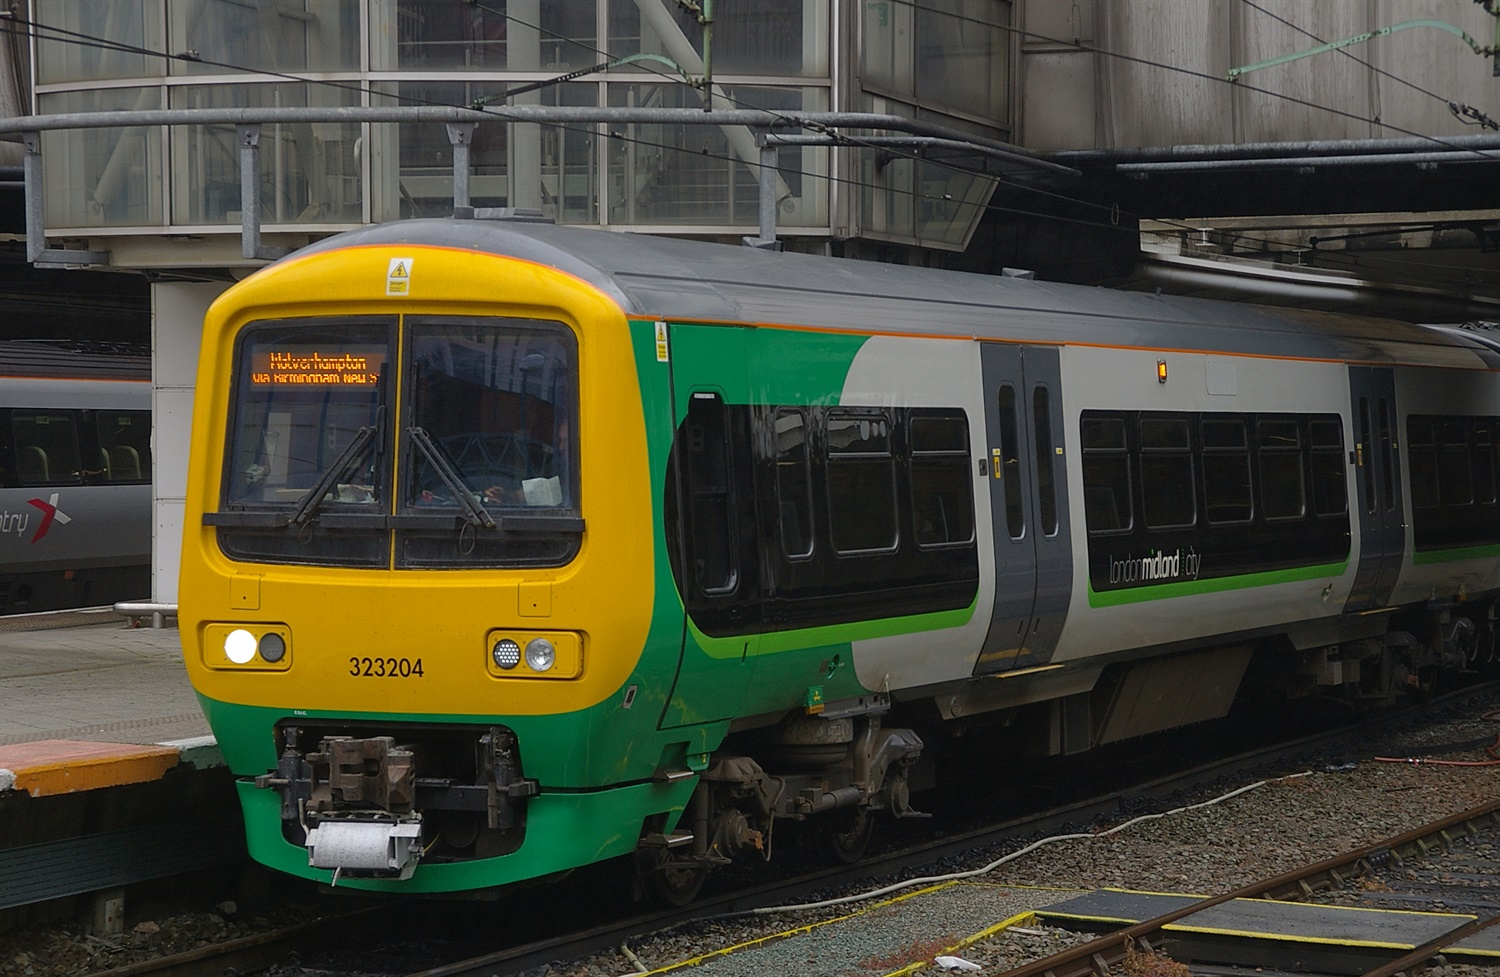 West Midlands Rail set to enter DfT partnership agreement